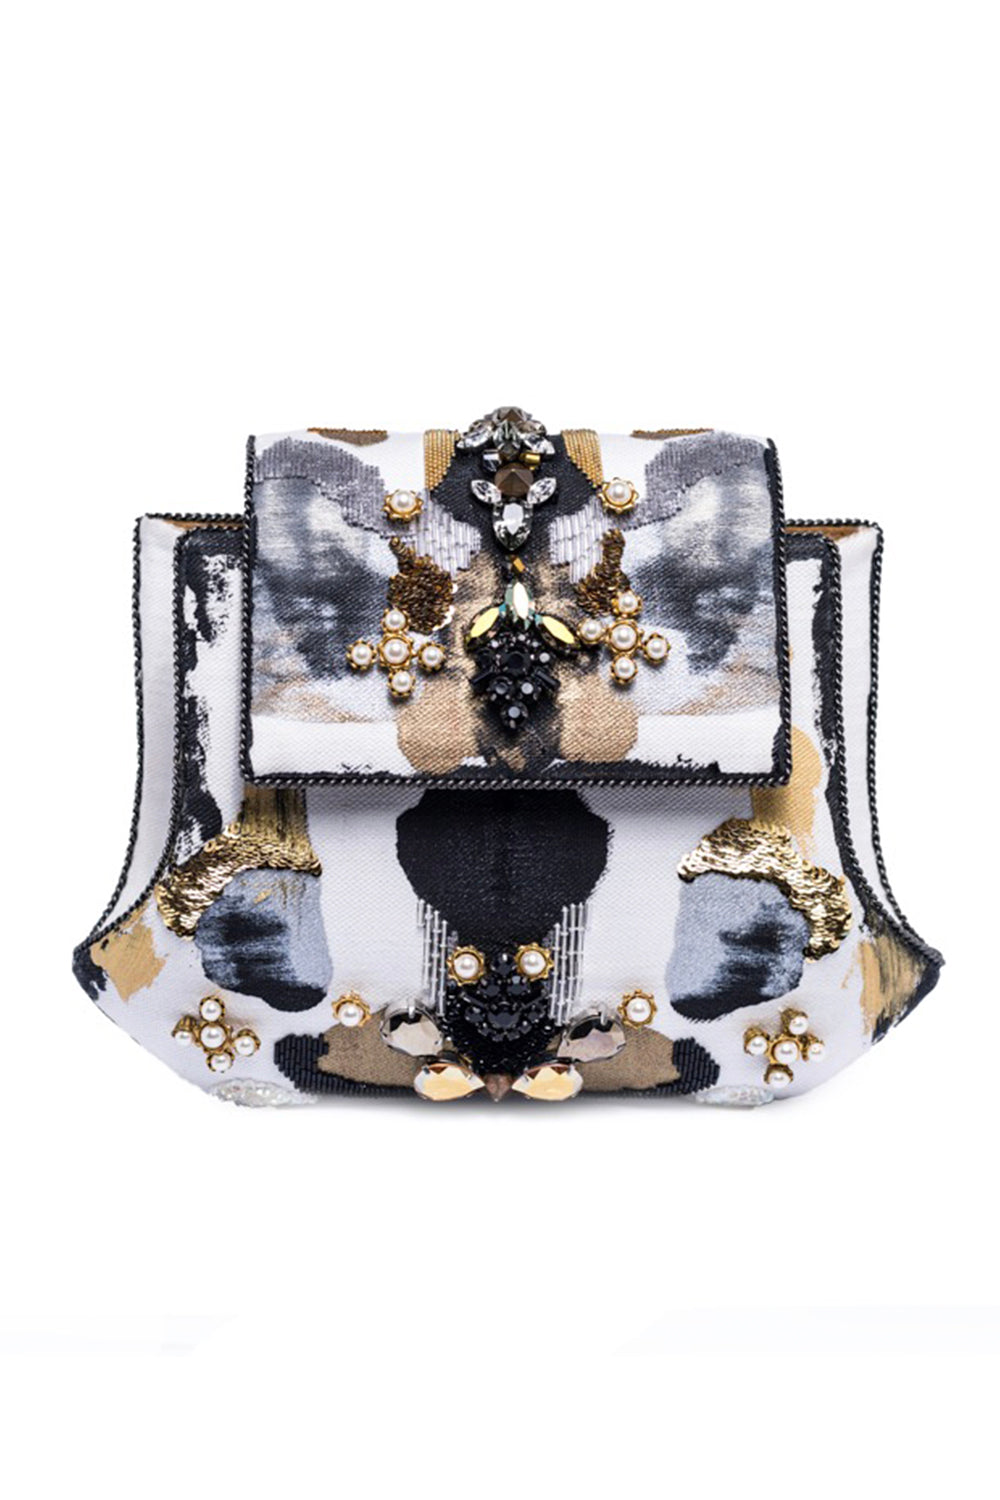 Clotho Handpainted Clutch With Crystals In Denim, White, Black & Gold